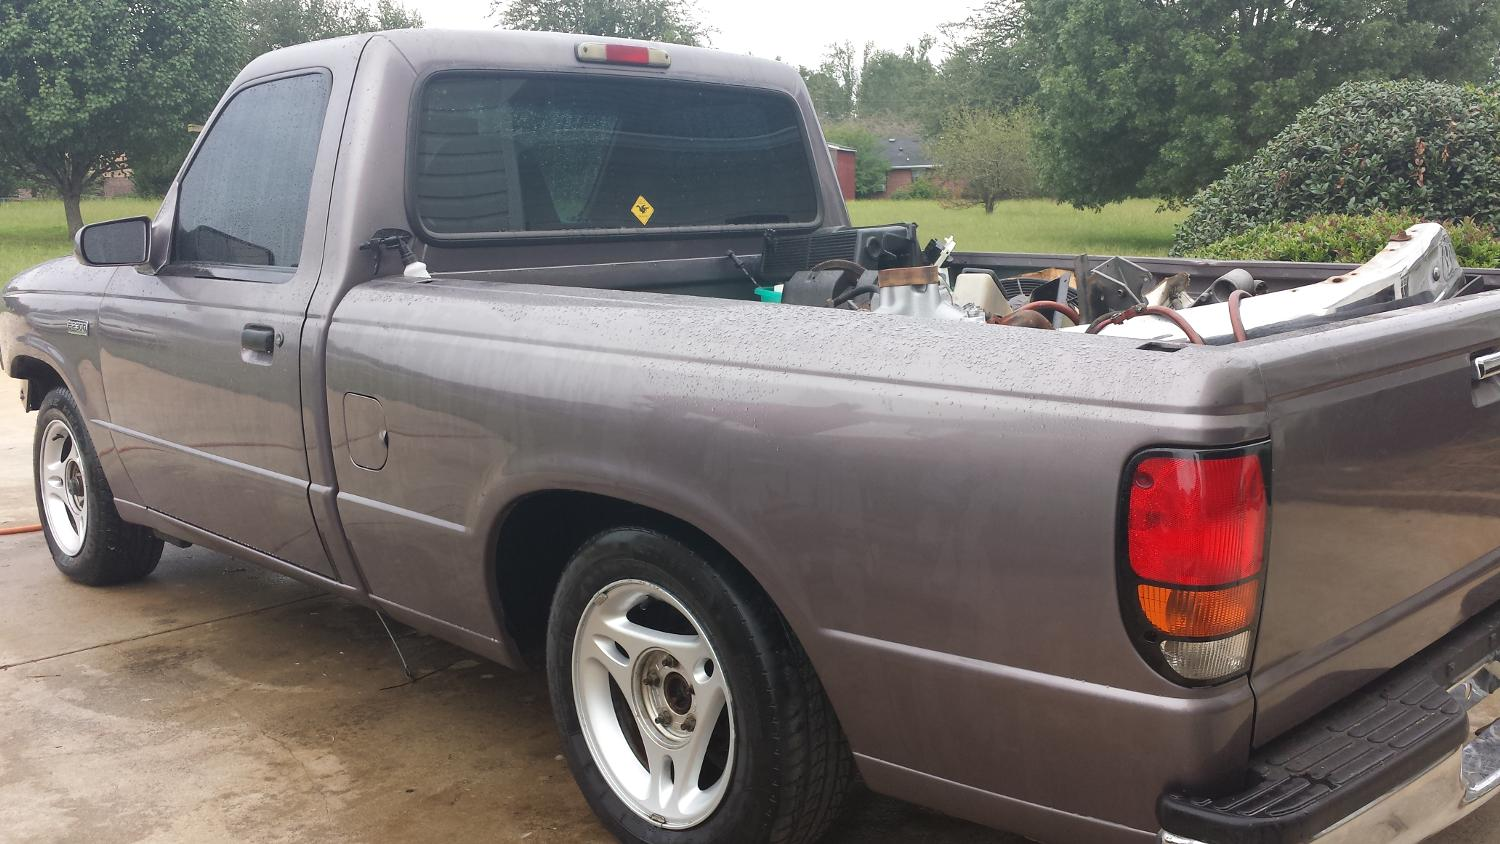 Find more 1997 mazda b2300 project truck ranger v8 for sale at up to 90 off mcdonough ga